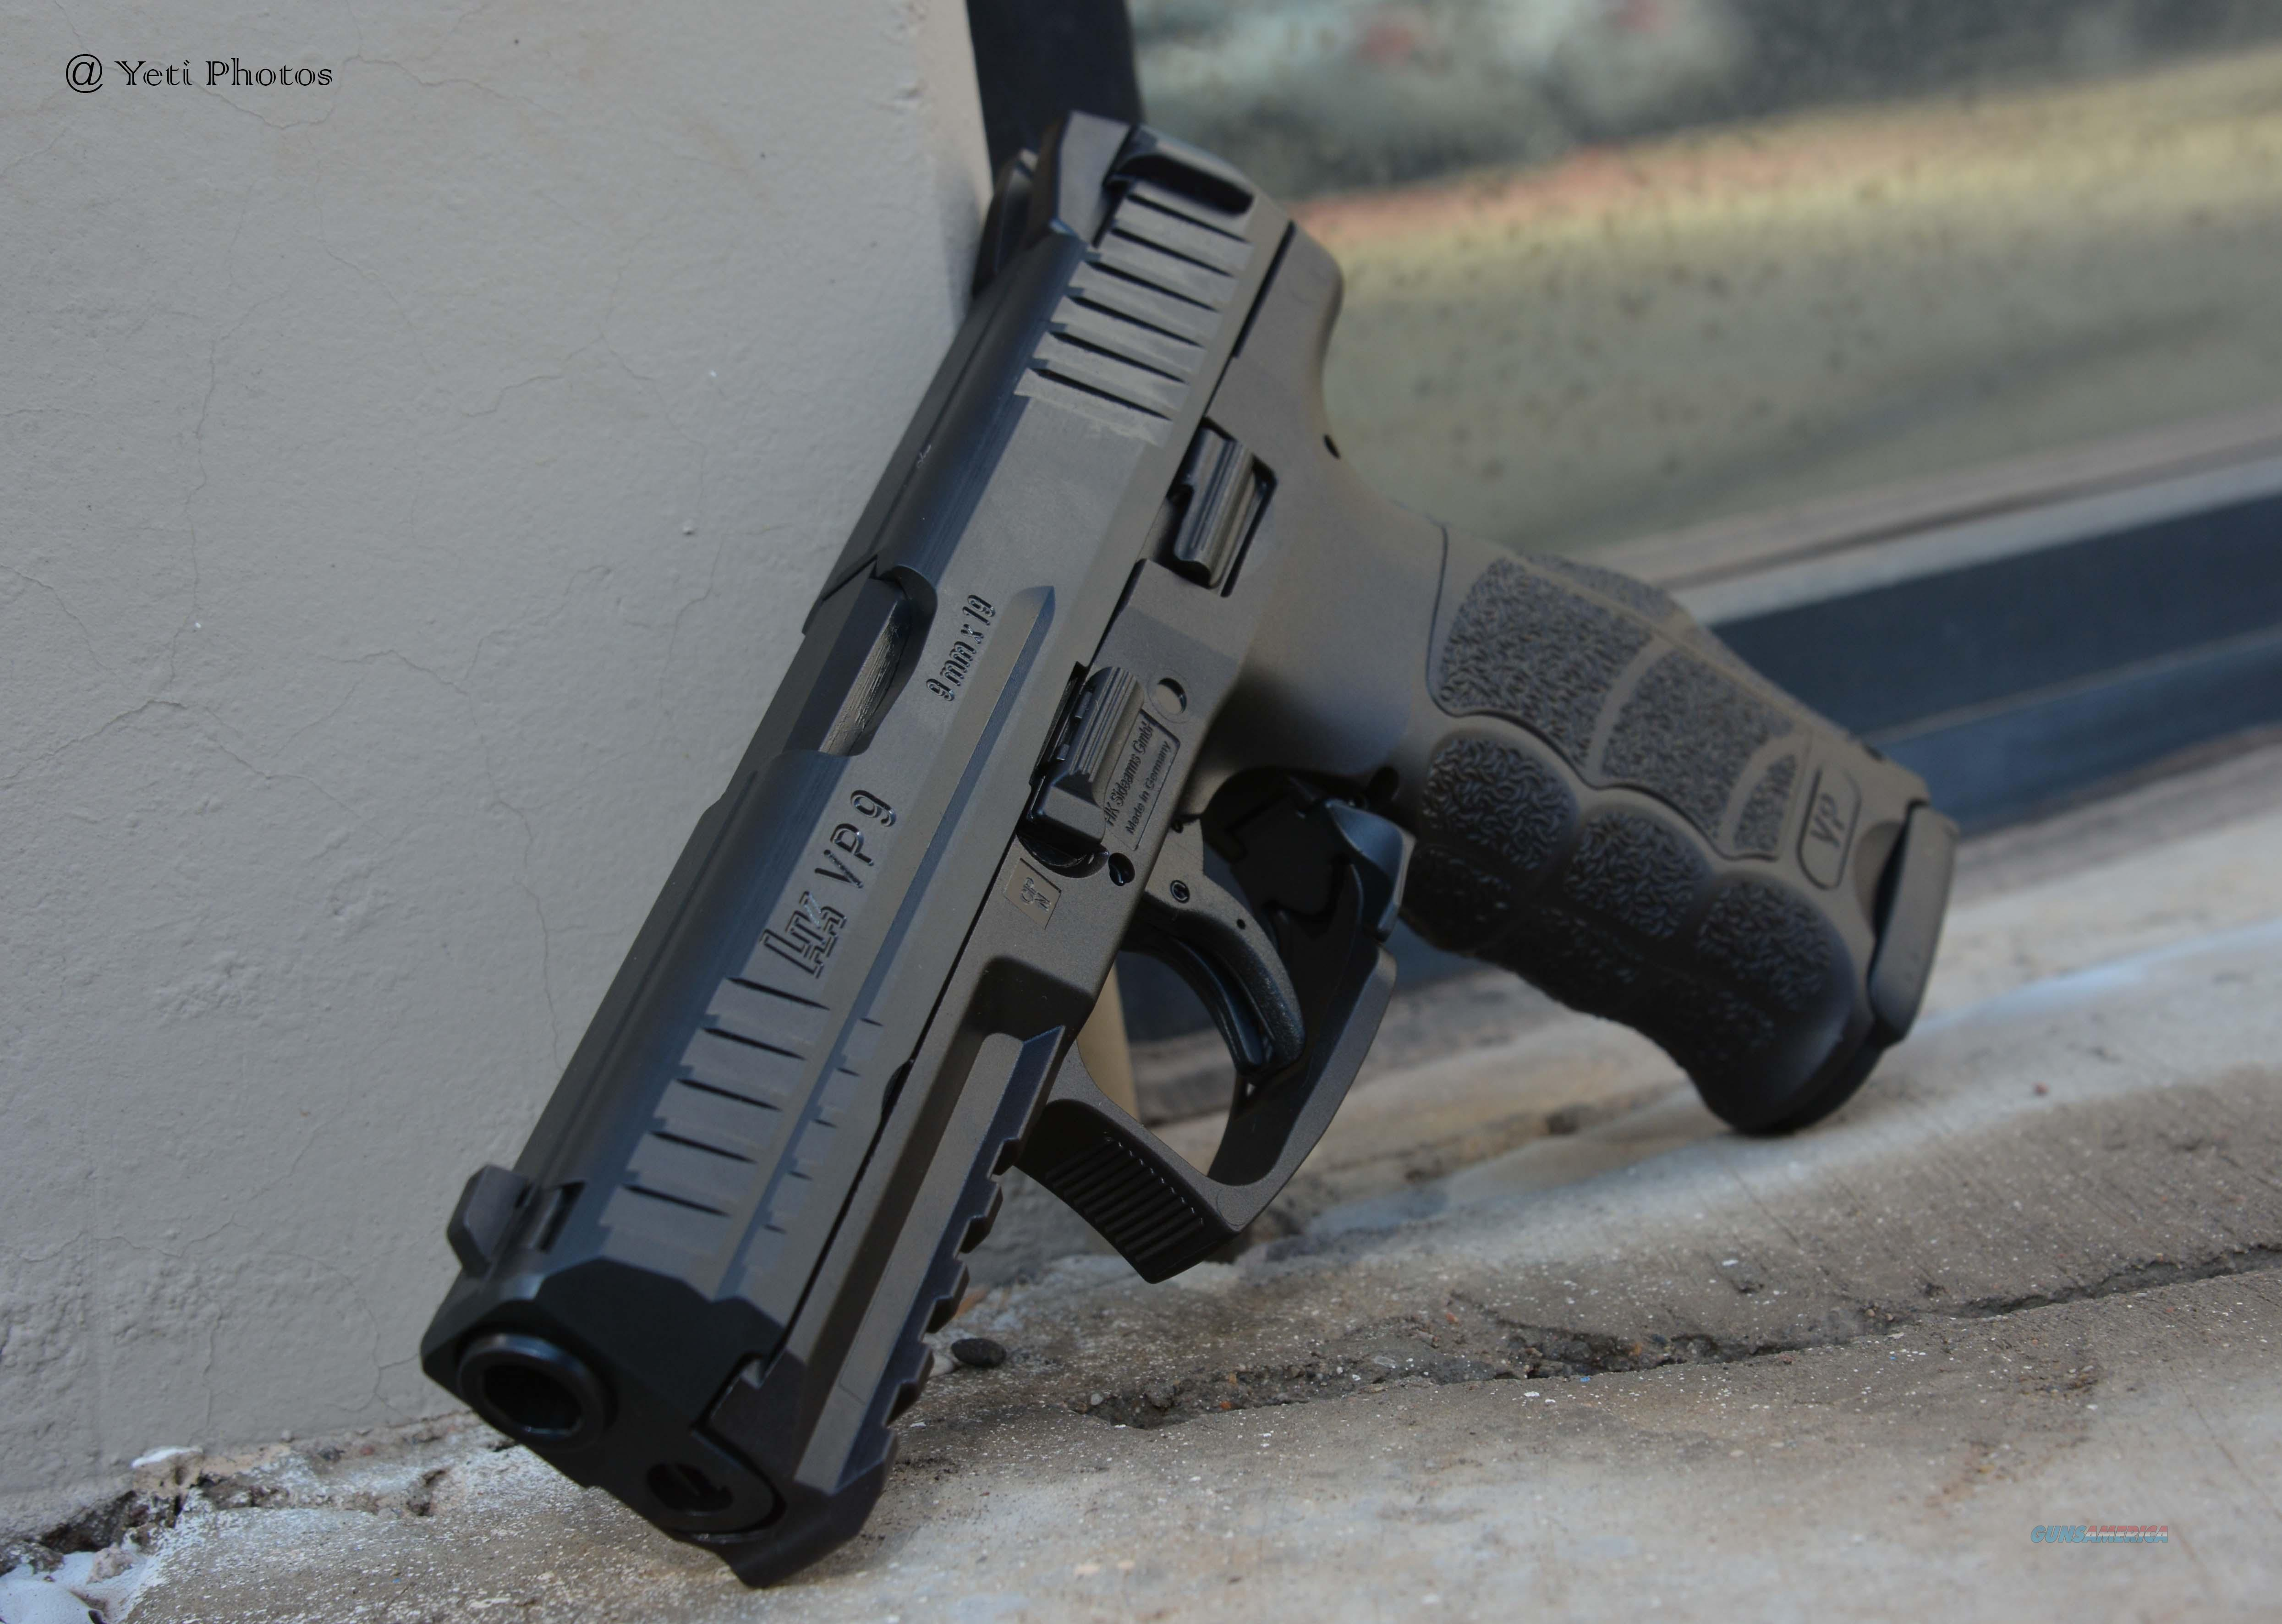 Heckler & Koch VP9 9mm H&K 15rnd Mags No CC Fee  Guns > Pistols > Heckler & Koch Pistols > Polymer Frame